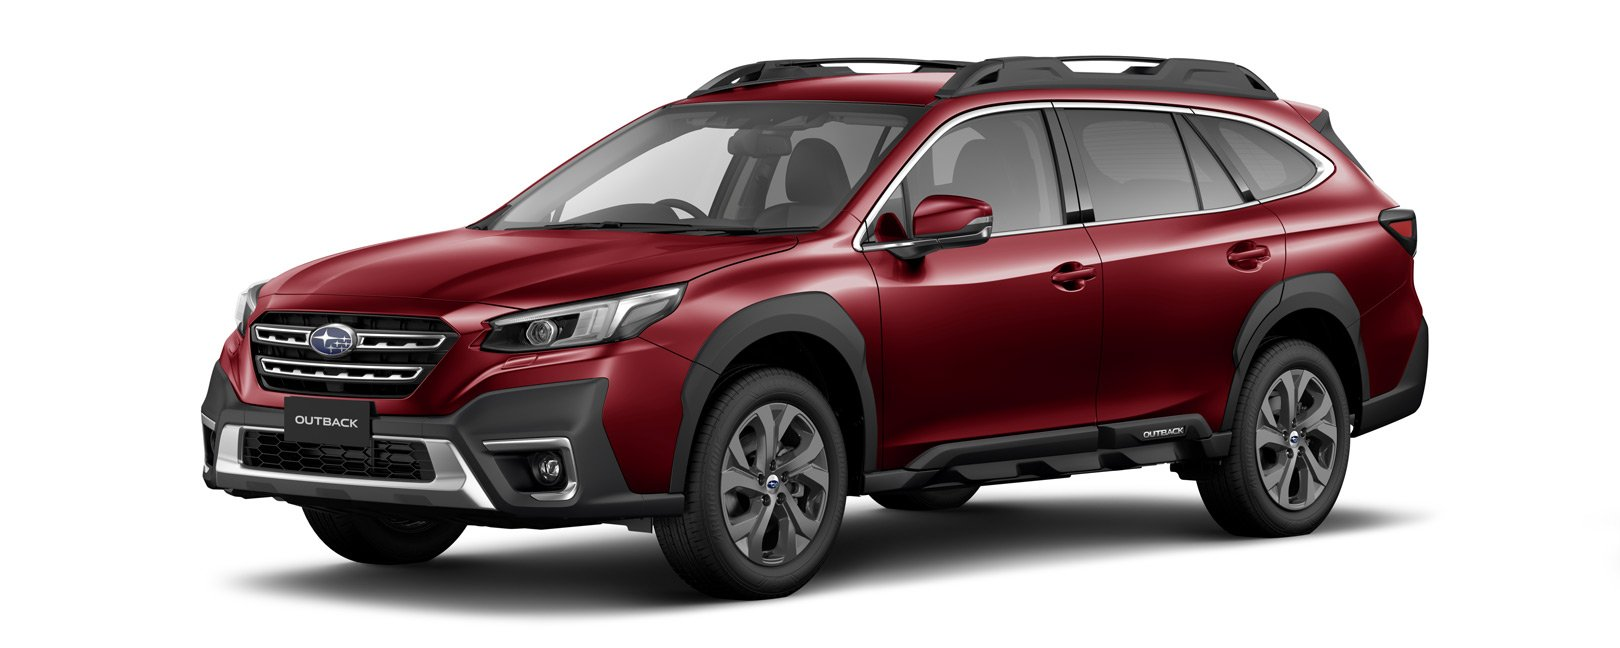 2021 Outback - crimson red